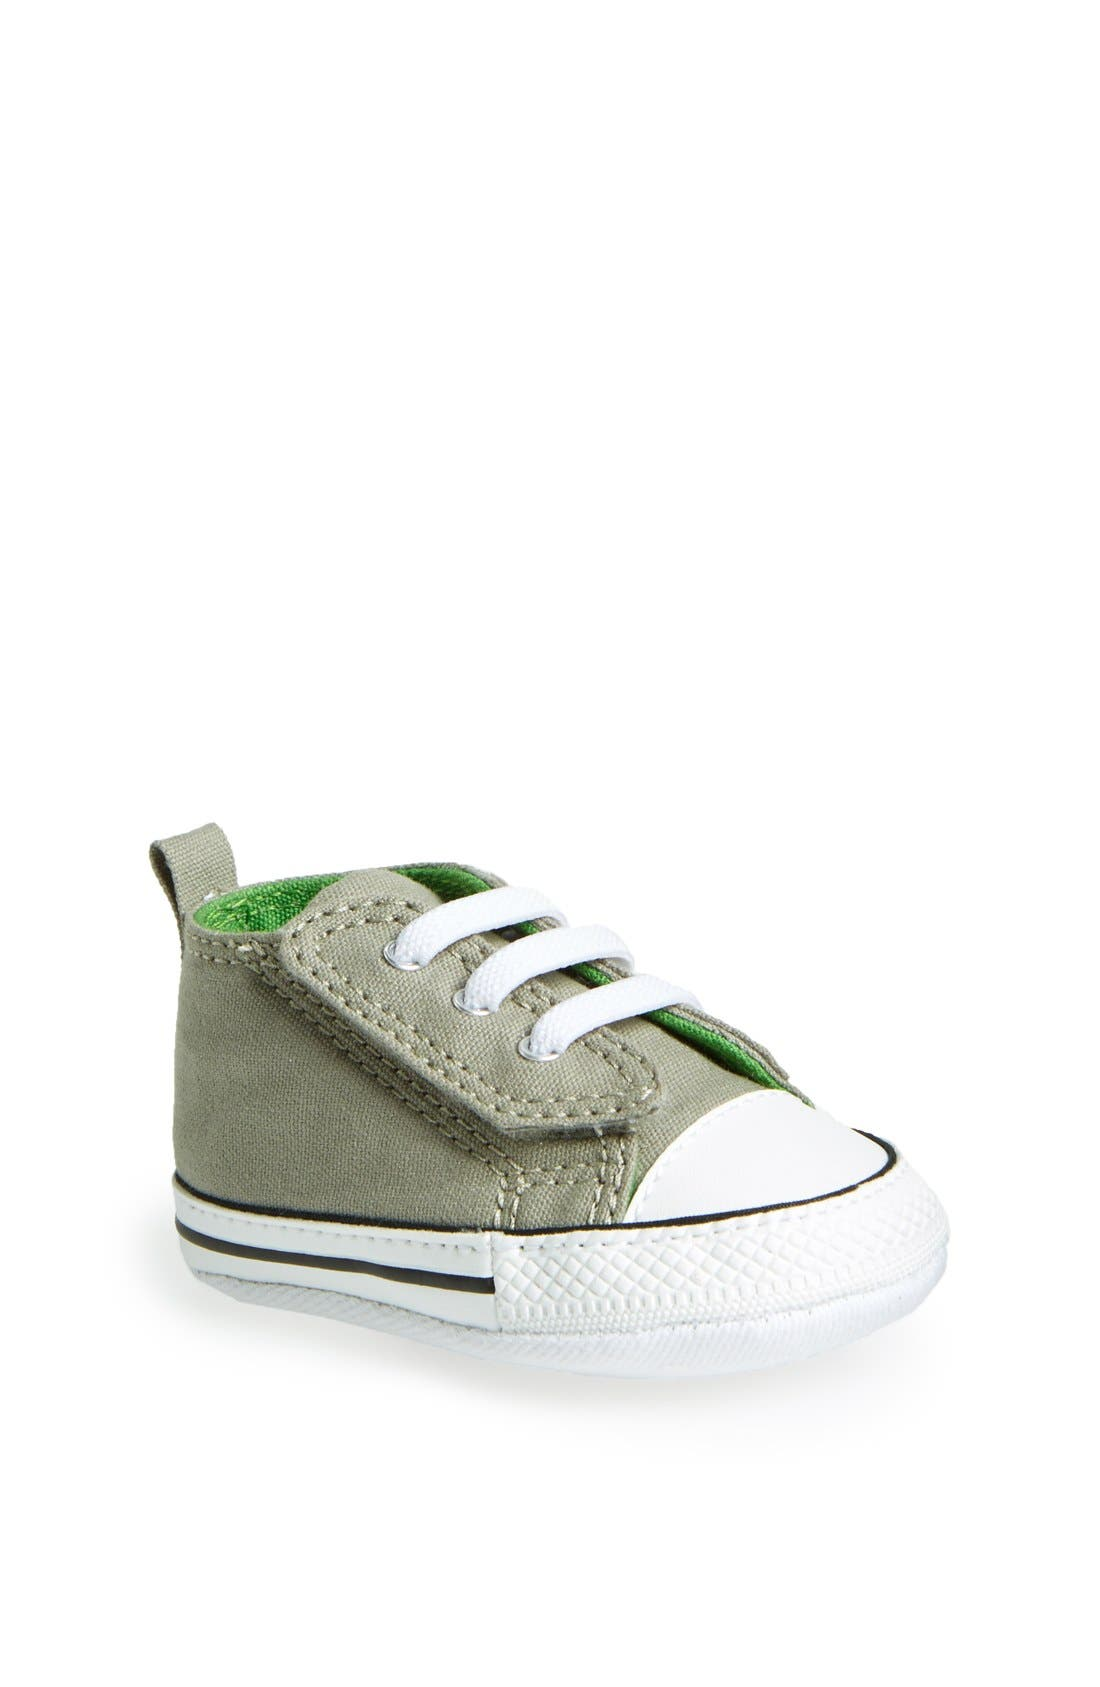 Chuck Taylor<sup>®</sup> Low Top Sneaker,                             Main thumbnail 1, color,                             Old Silver